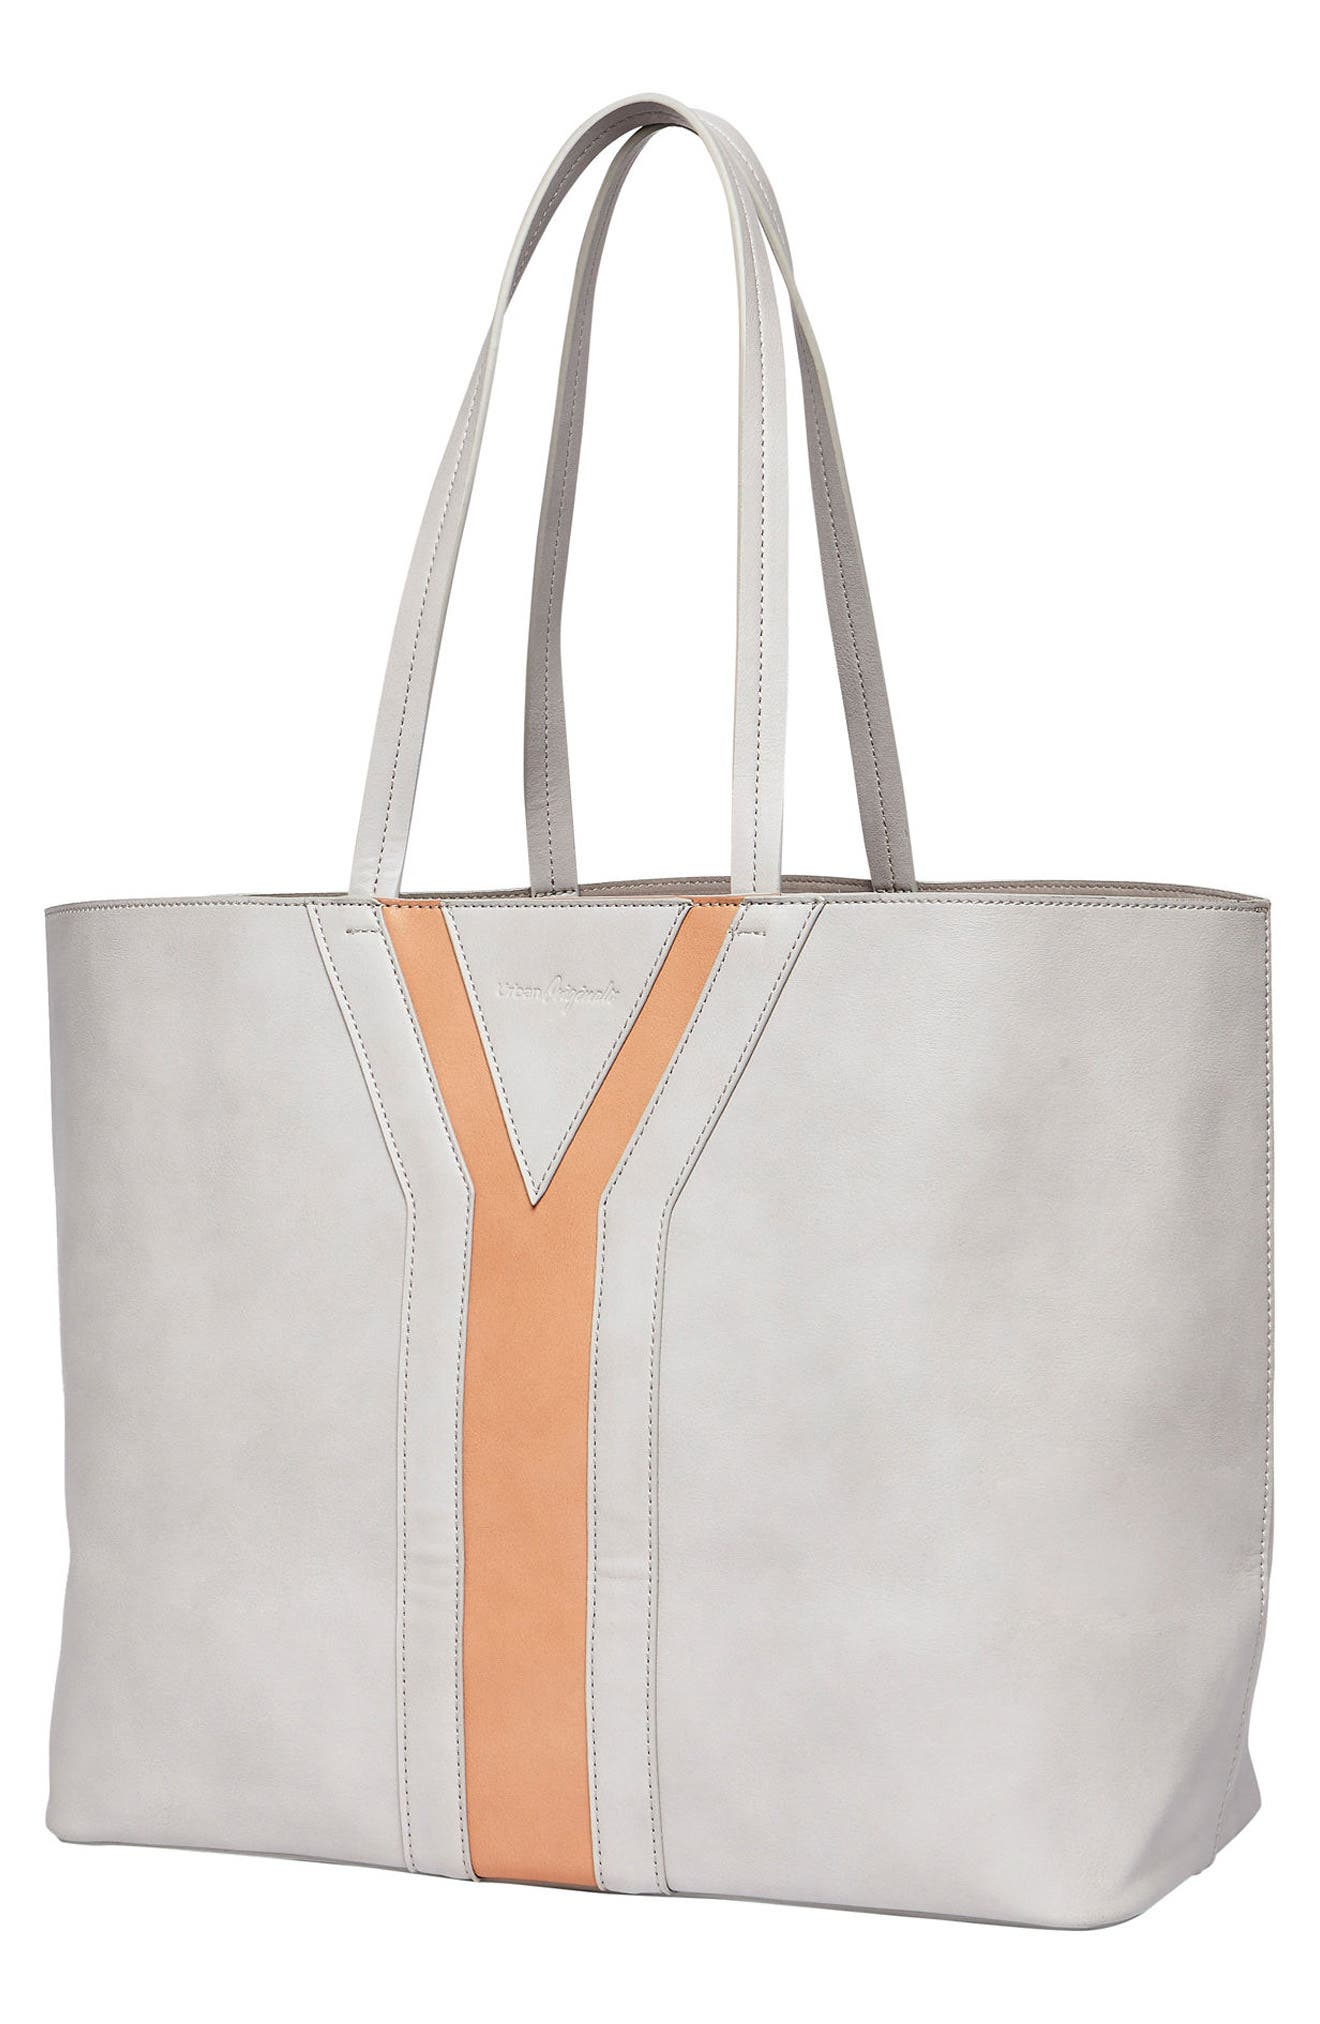 Streetstyle Vegan Leather Tote,                             Alternate thumbnail 2, color,                             Grey/ Pink